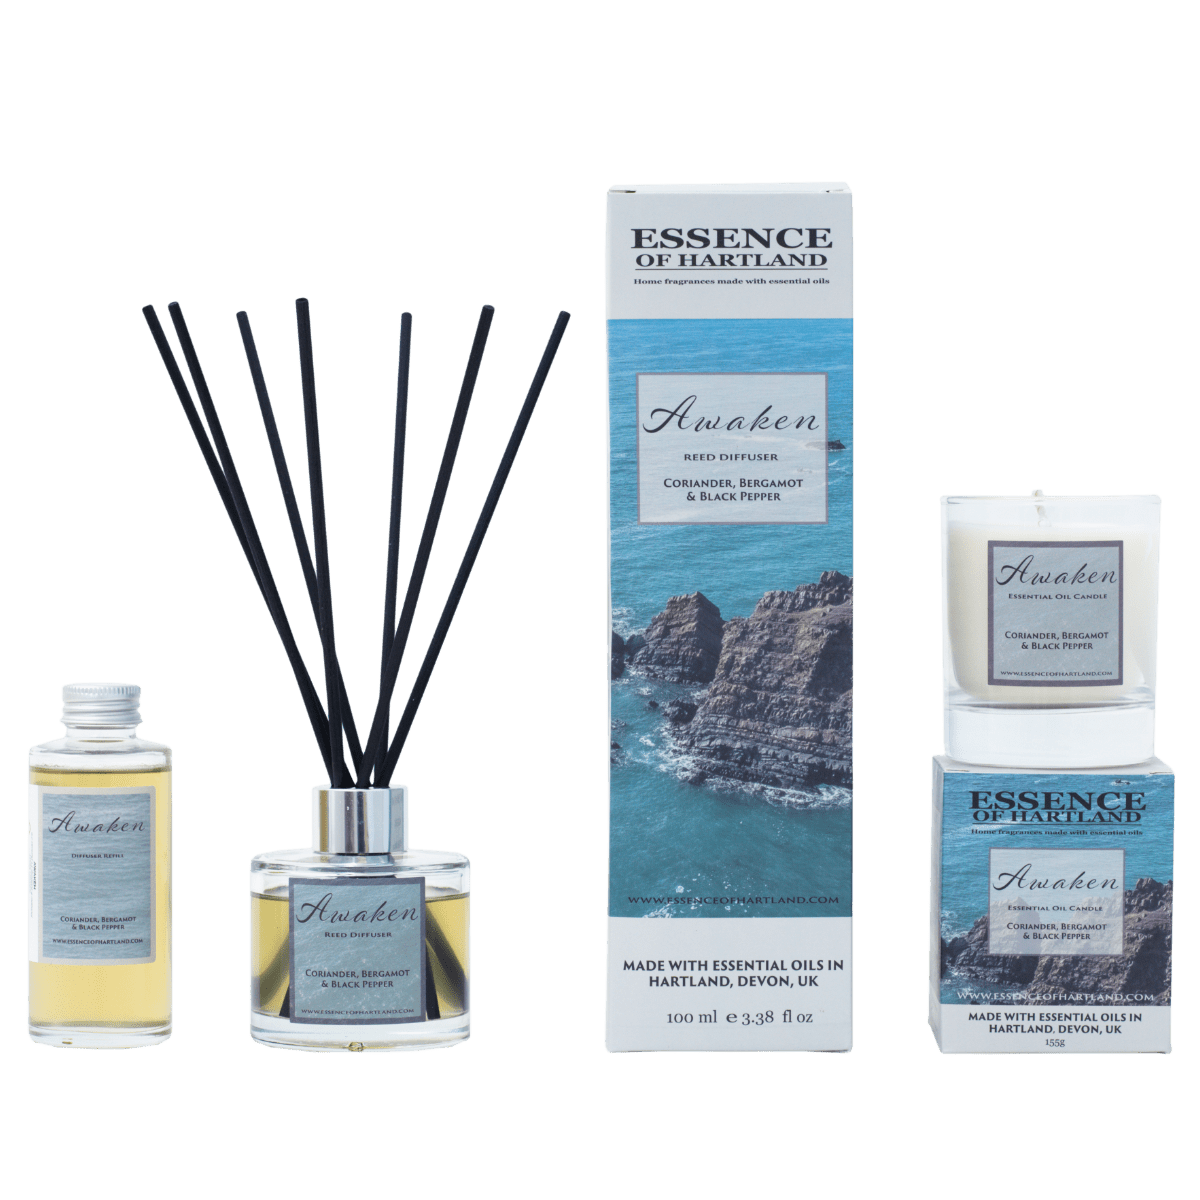 A group of Awaken products. A glass bottle of Awaken refills on the right, then a glass diffuser bottle of Awaken with black fibre reeds, in the middle the diffuser box packaging detailing the name of the product and an image of some rocks surrounded by the sea, a similar image is on the box packaging for the candle on the right hand side with the candle sat on top.